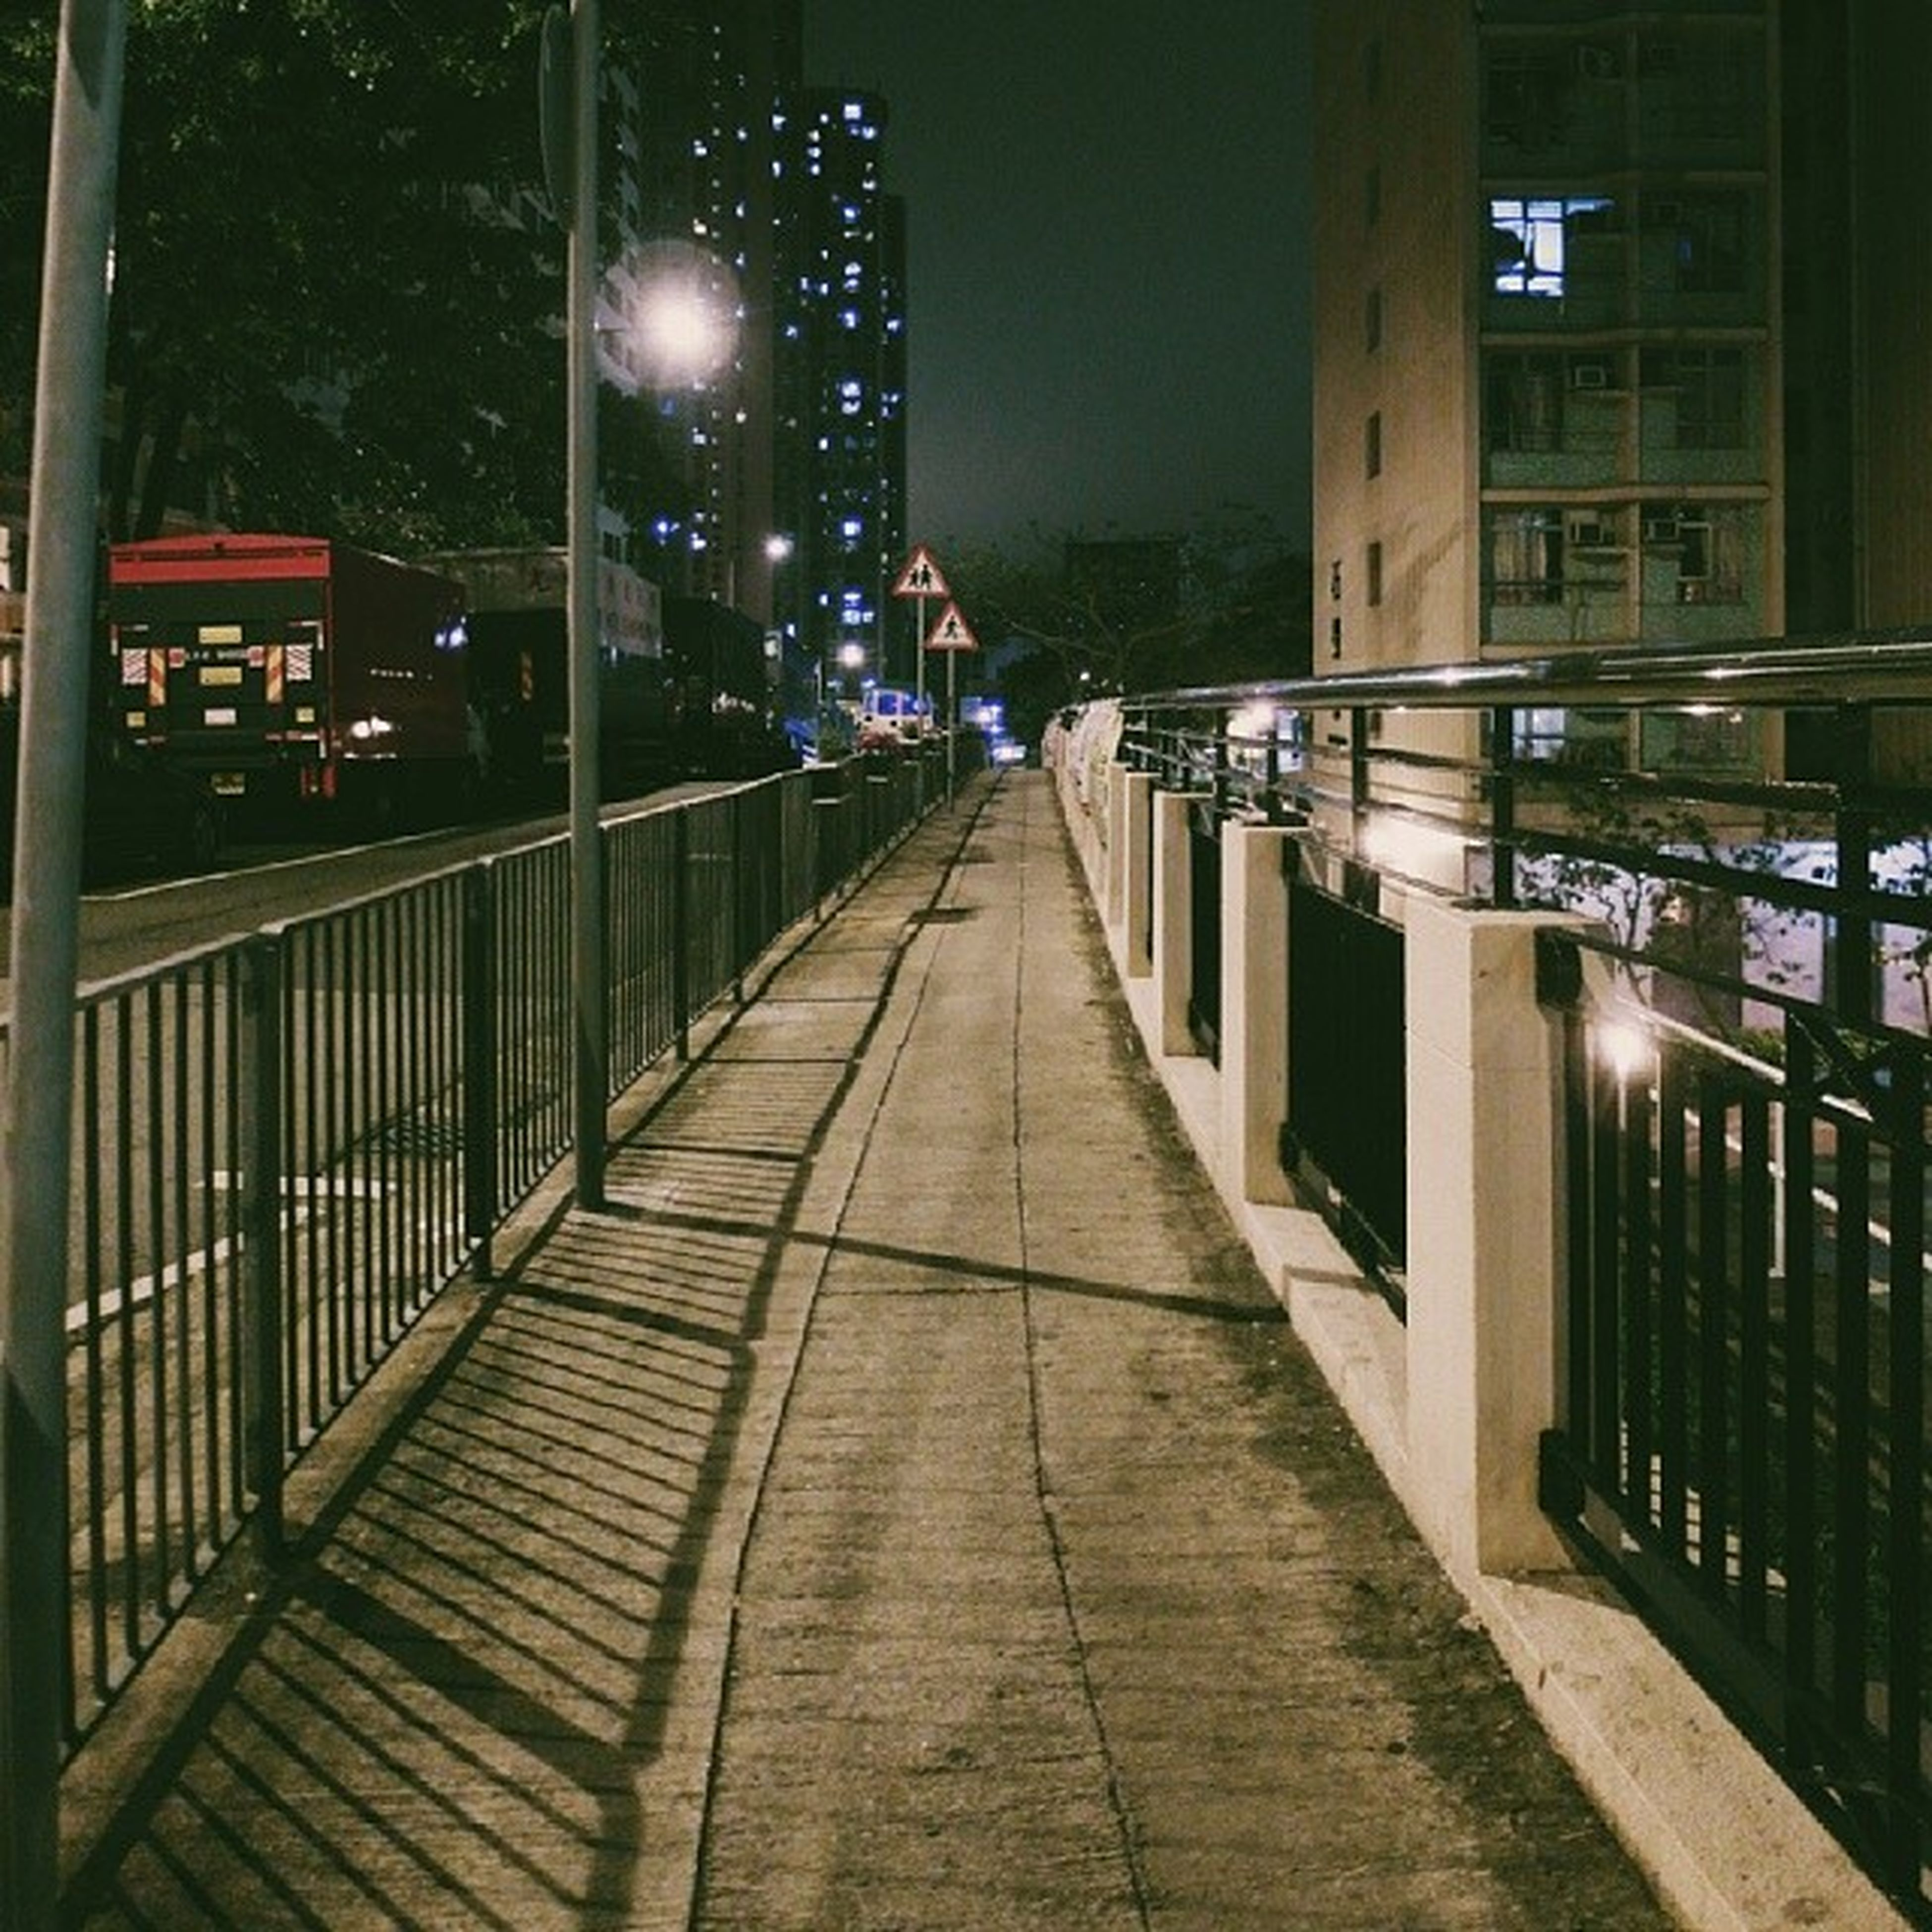 architecture, building exterior, built structure, the way forward, illuminated, night, city, street light, diminishing perspective, lighting equipment, building, street, residential building, vanishing point, residential structure, railing, outdoors, sidewalk, empty, narrow